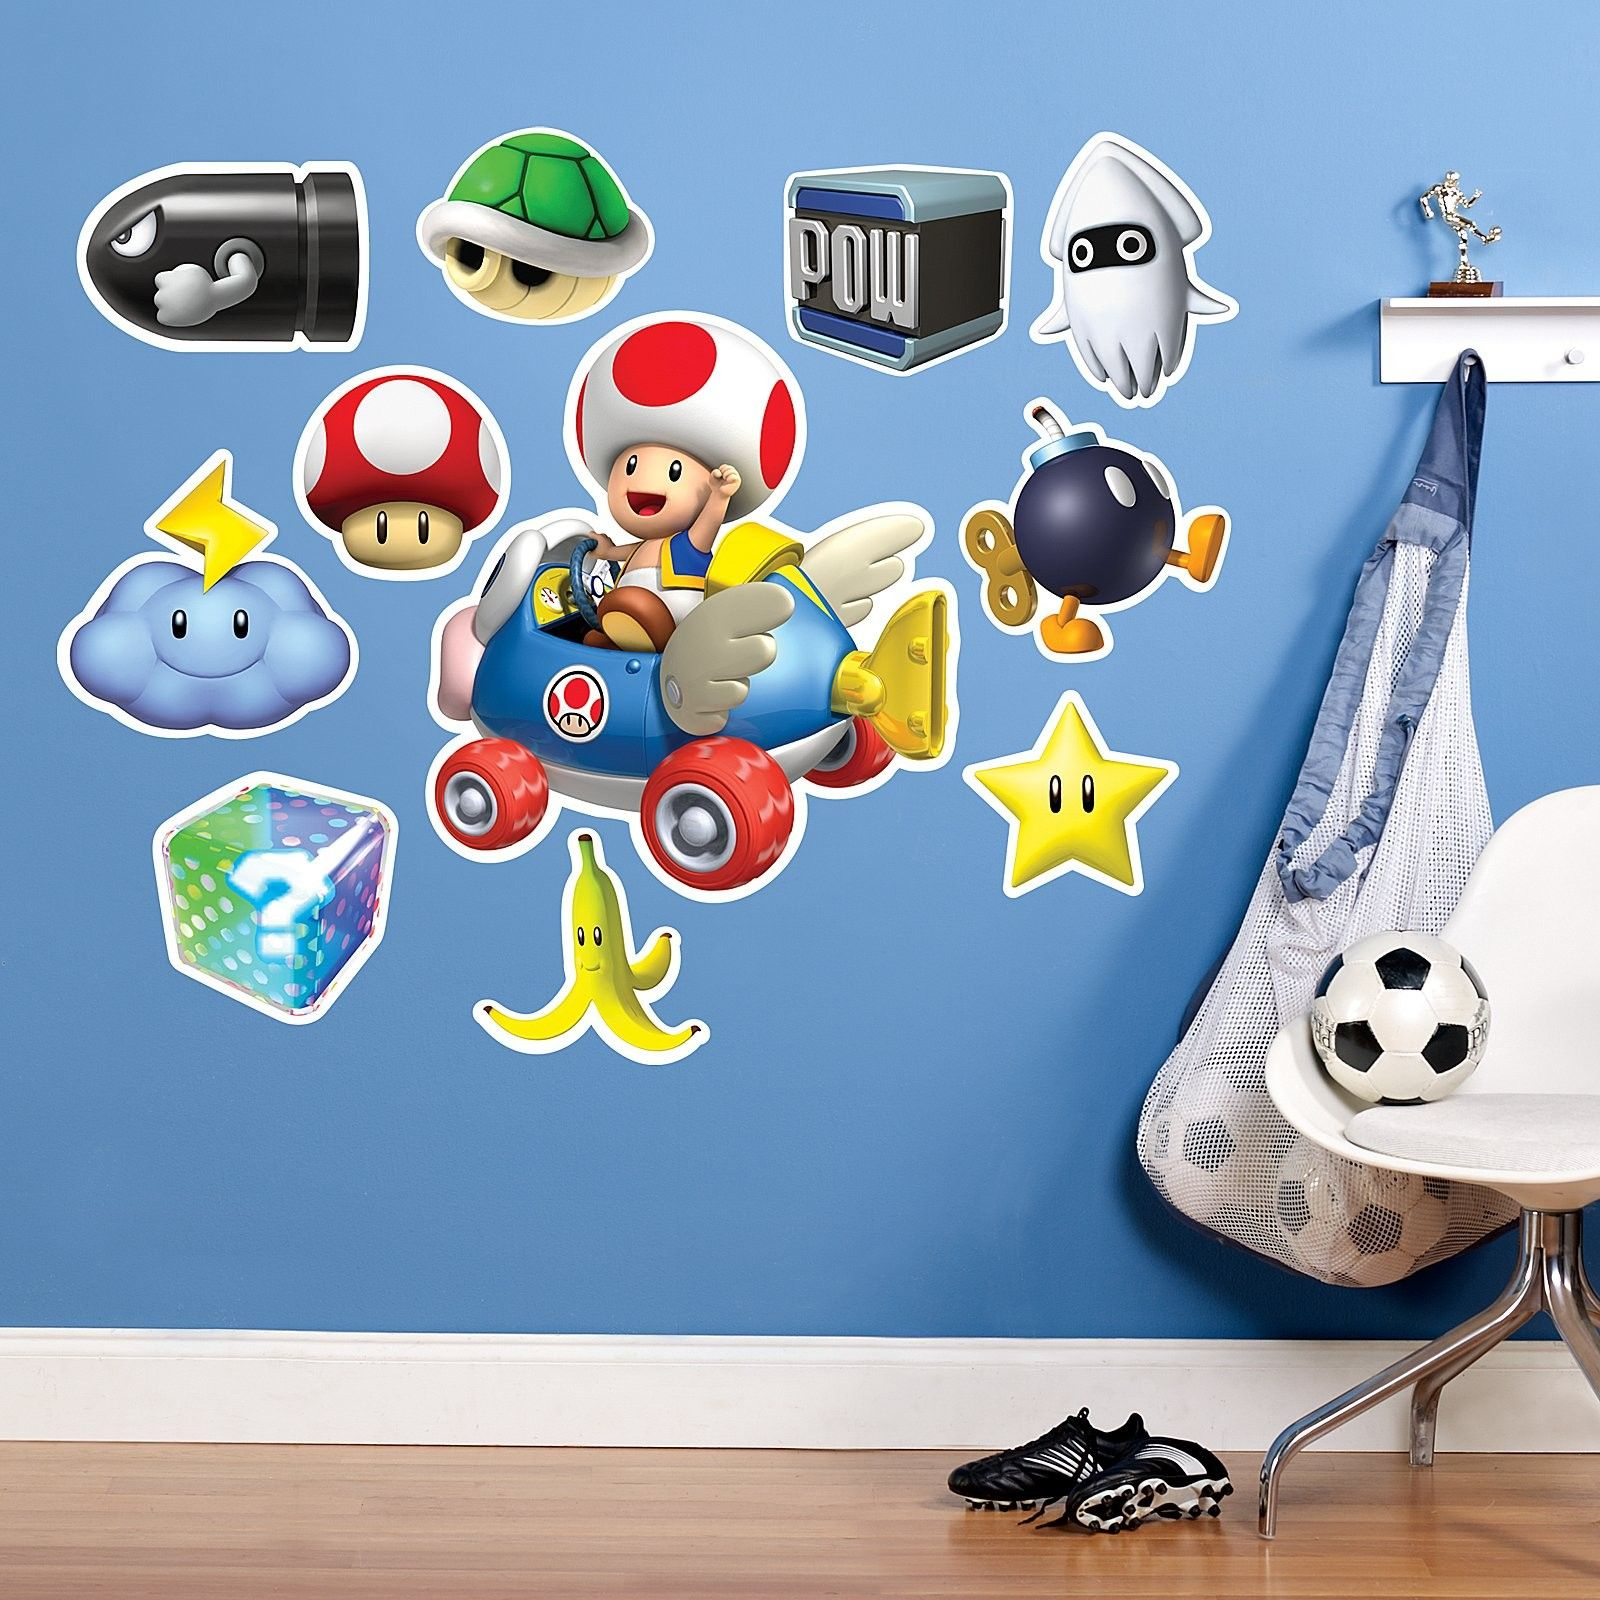 Mario kart wii toad giant wall decal includes 1 giant wall mario kart wii toad giant wall decal includes 1 giant wall decal amipublicfo Gallery